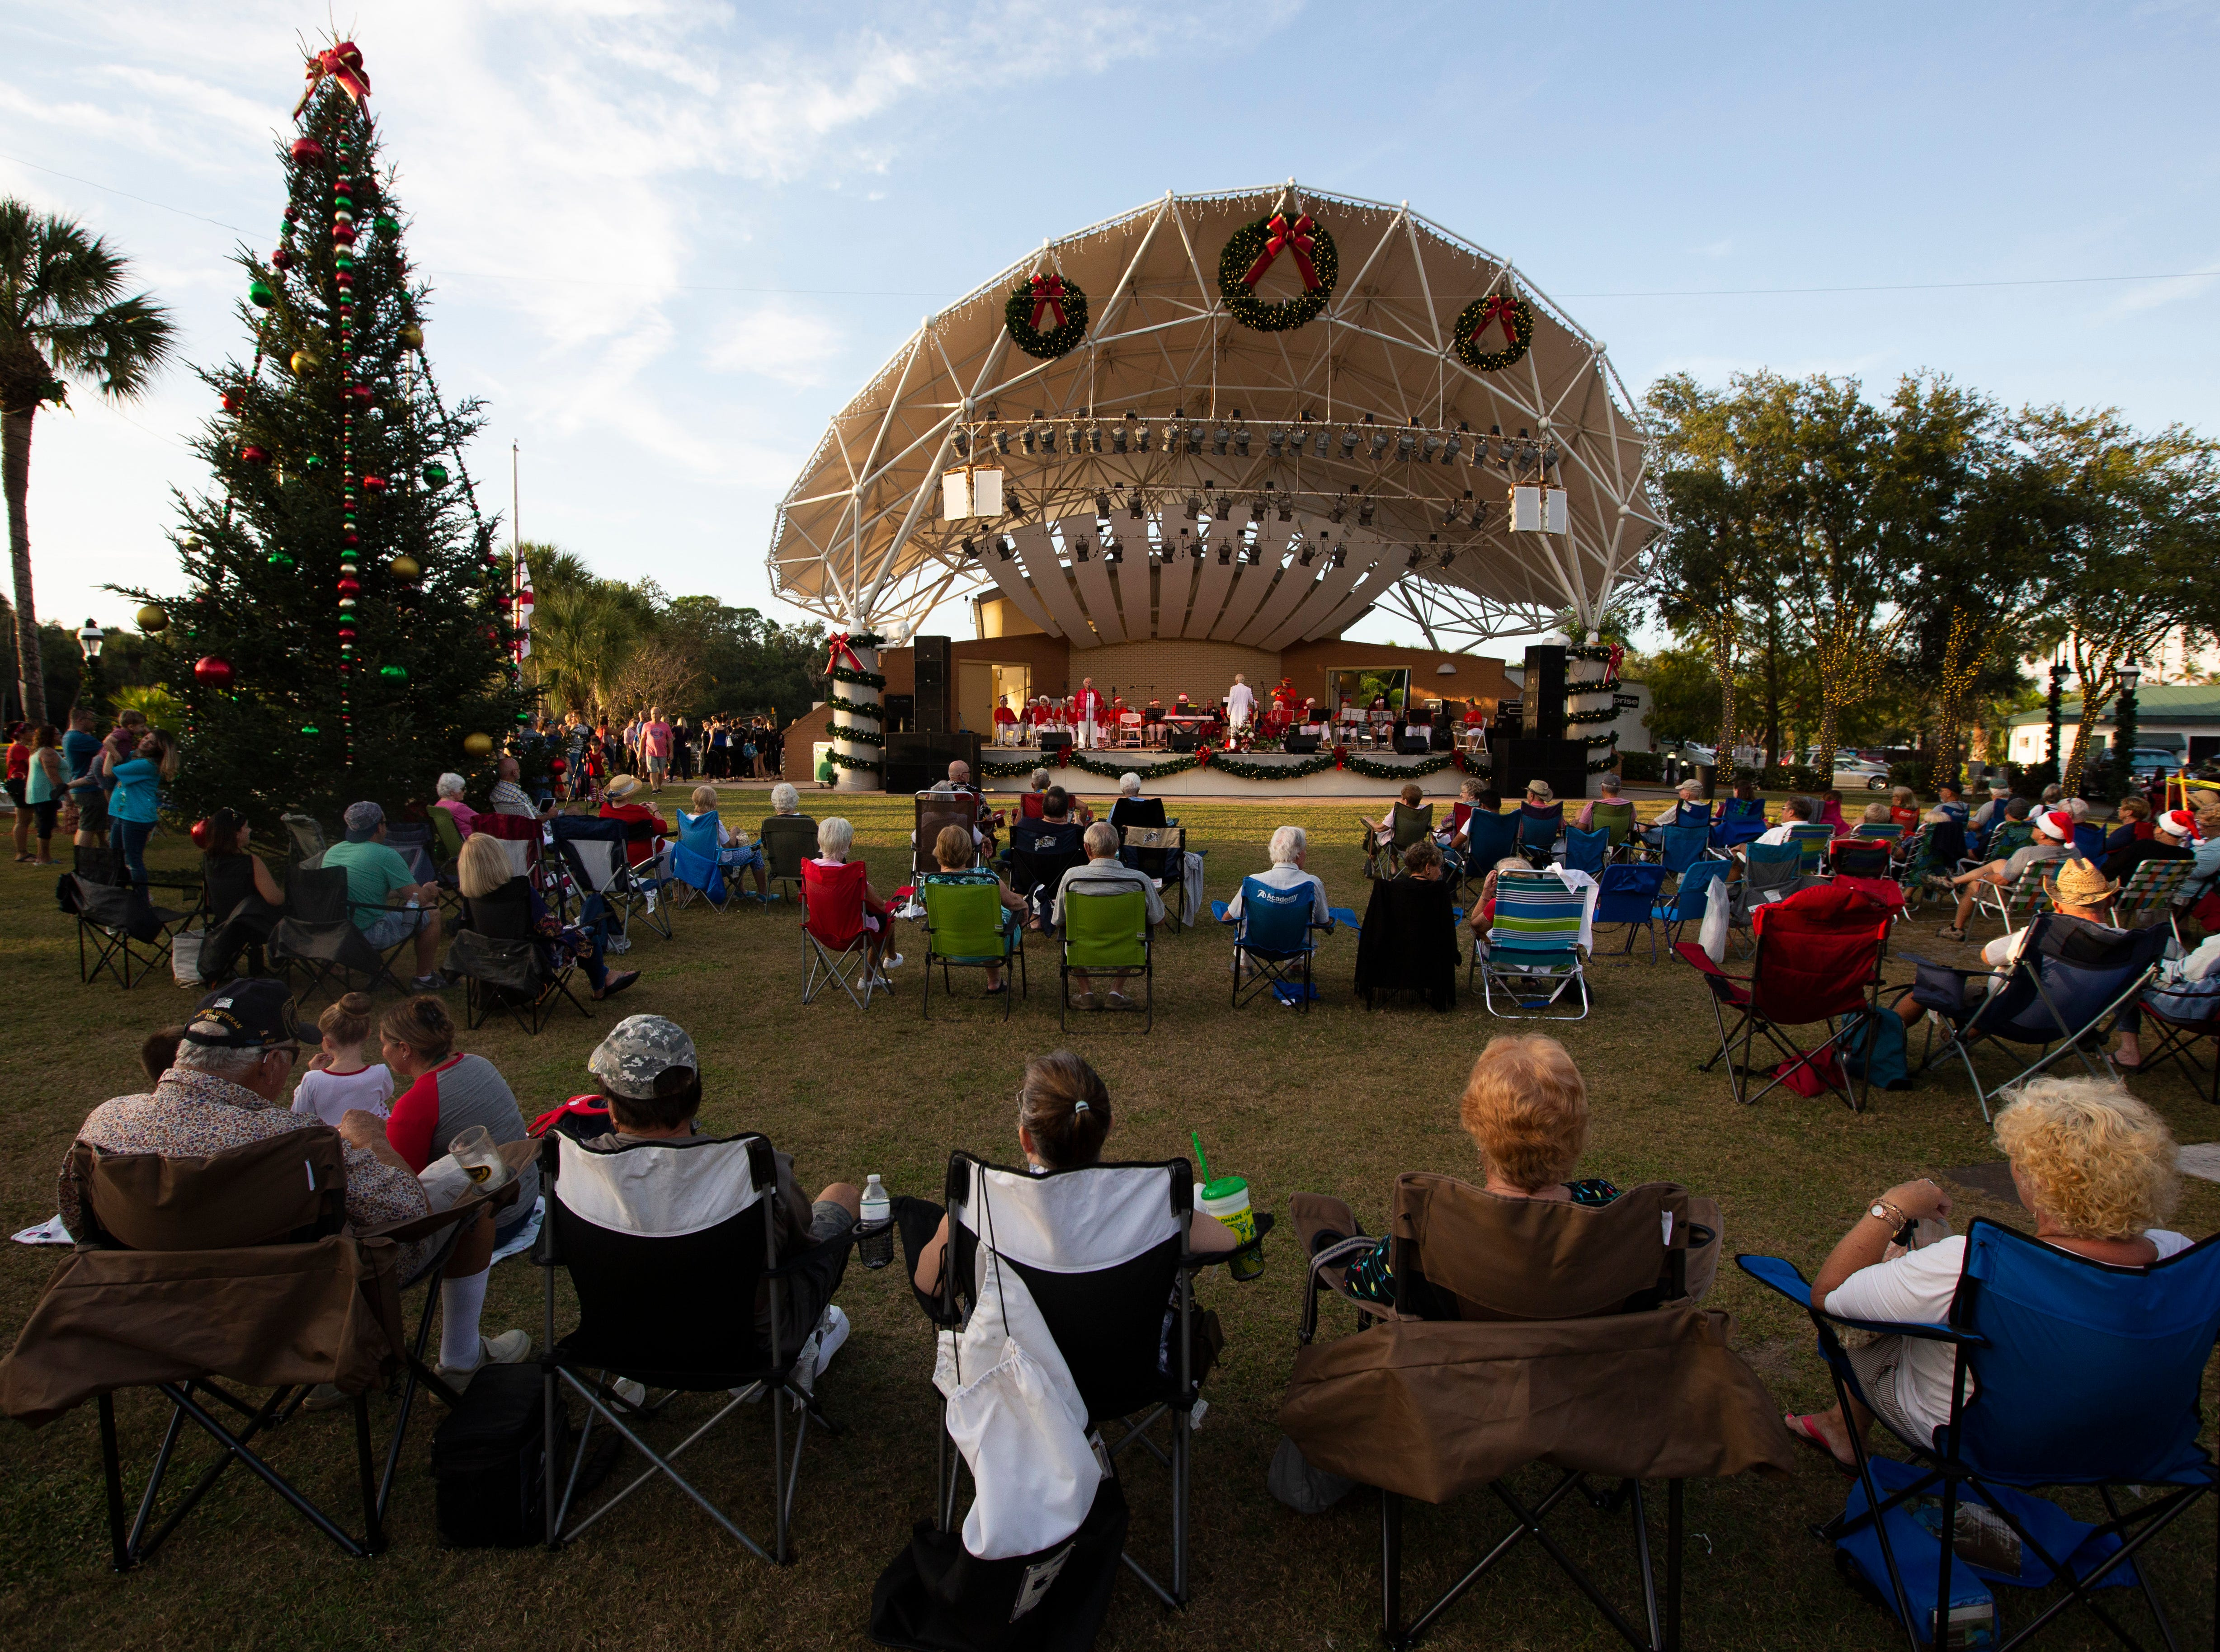 The 19th annual Holiday in the Park kicked off yesterday, Dec. 4, 2018 at the Riverside Park in Bonita Springs. While faux snow caused a foam blizzard families enjoyed live music, dance performances, taking photos with Mr. and Mrs. Claus, cookies, apple cider and the lighting of the Christmas Tree at dusk.